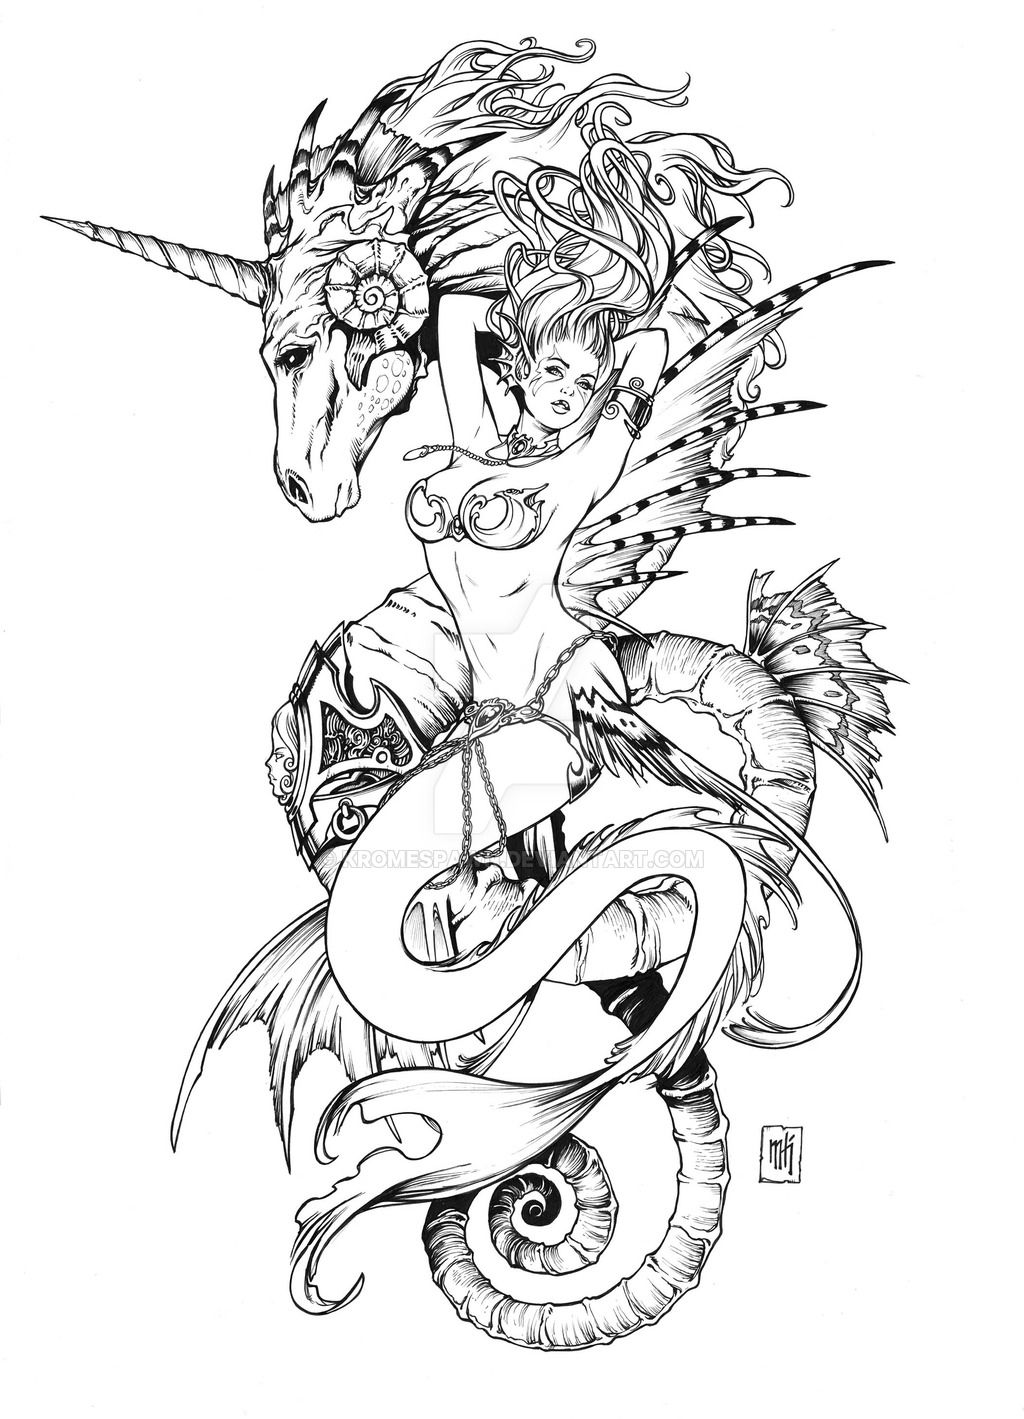 Tattoo design picture - Tattoo Design By Kromespawn Deviantart Com On Deviantart